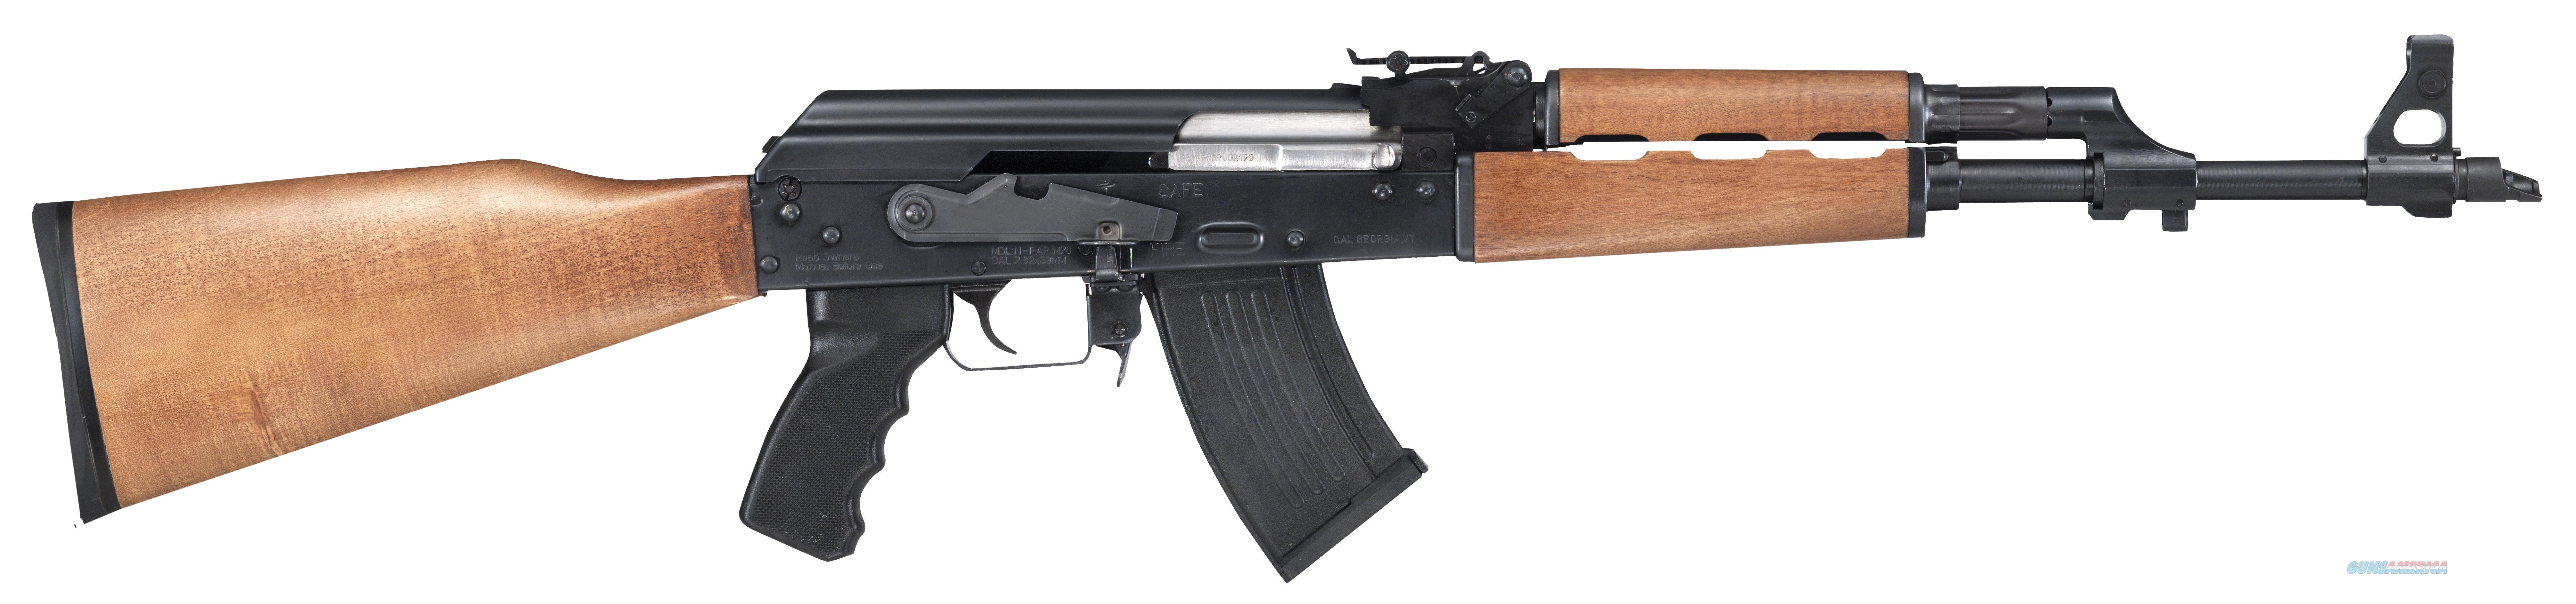 CENTURY INTERNATIONAL ARMS PAP RFL 7.62X39 10RD WOOD RI2089-N  Guns > Rifles > Century International Arms - Rifles > Rifles